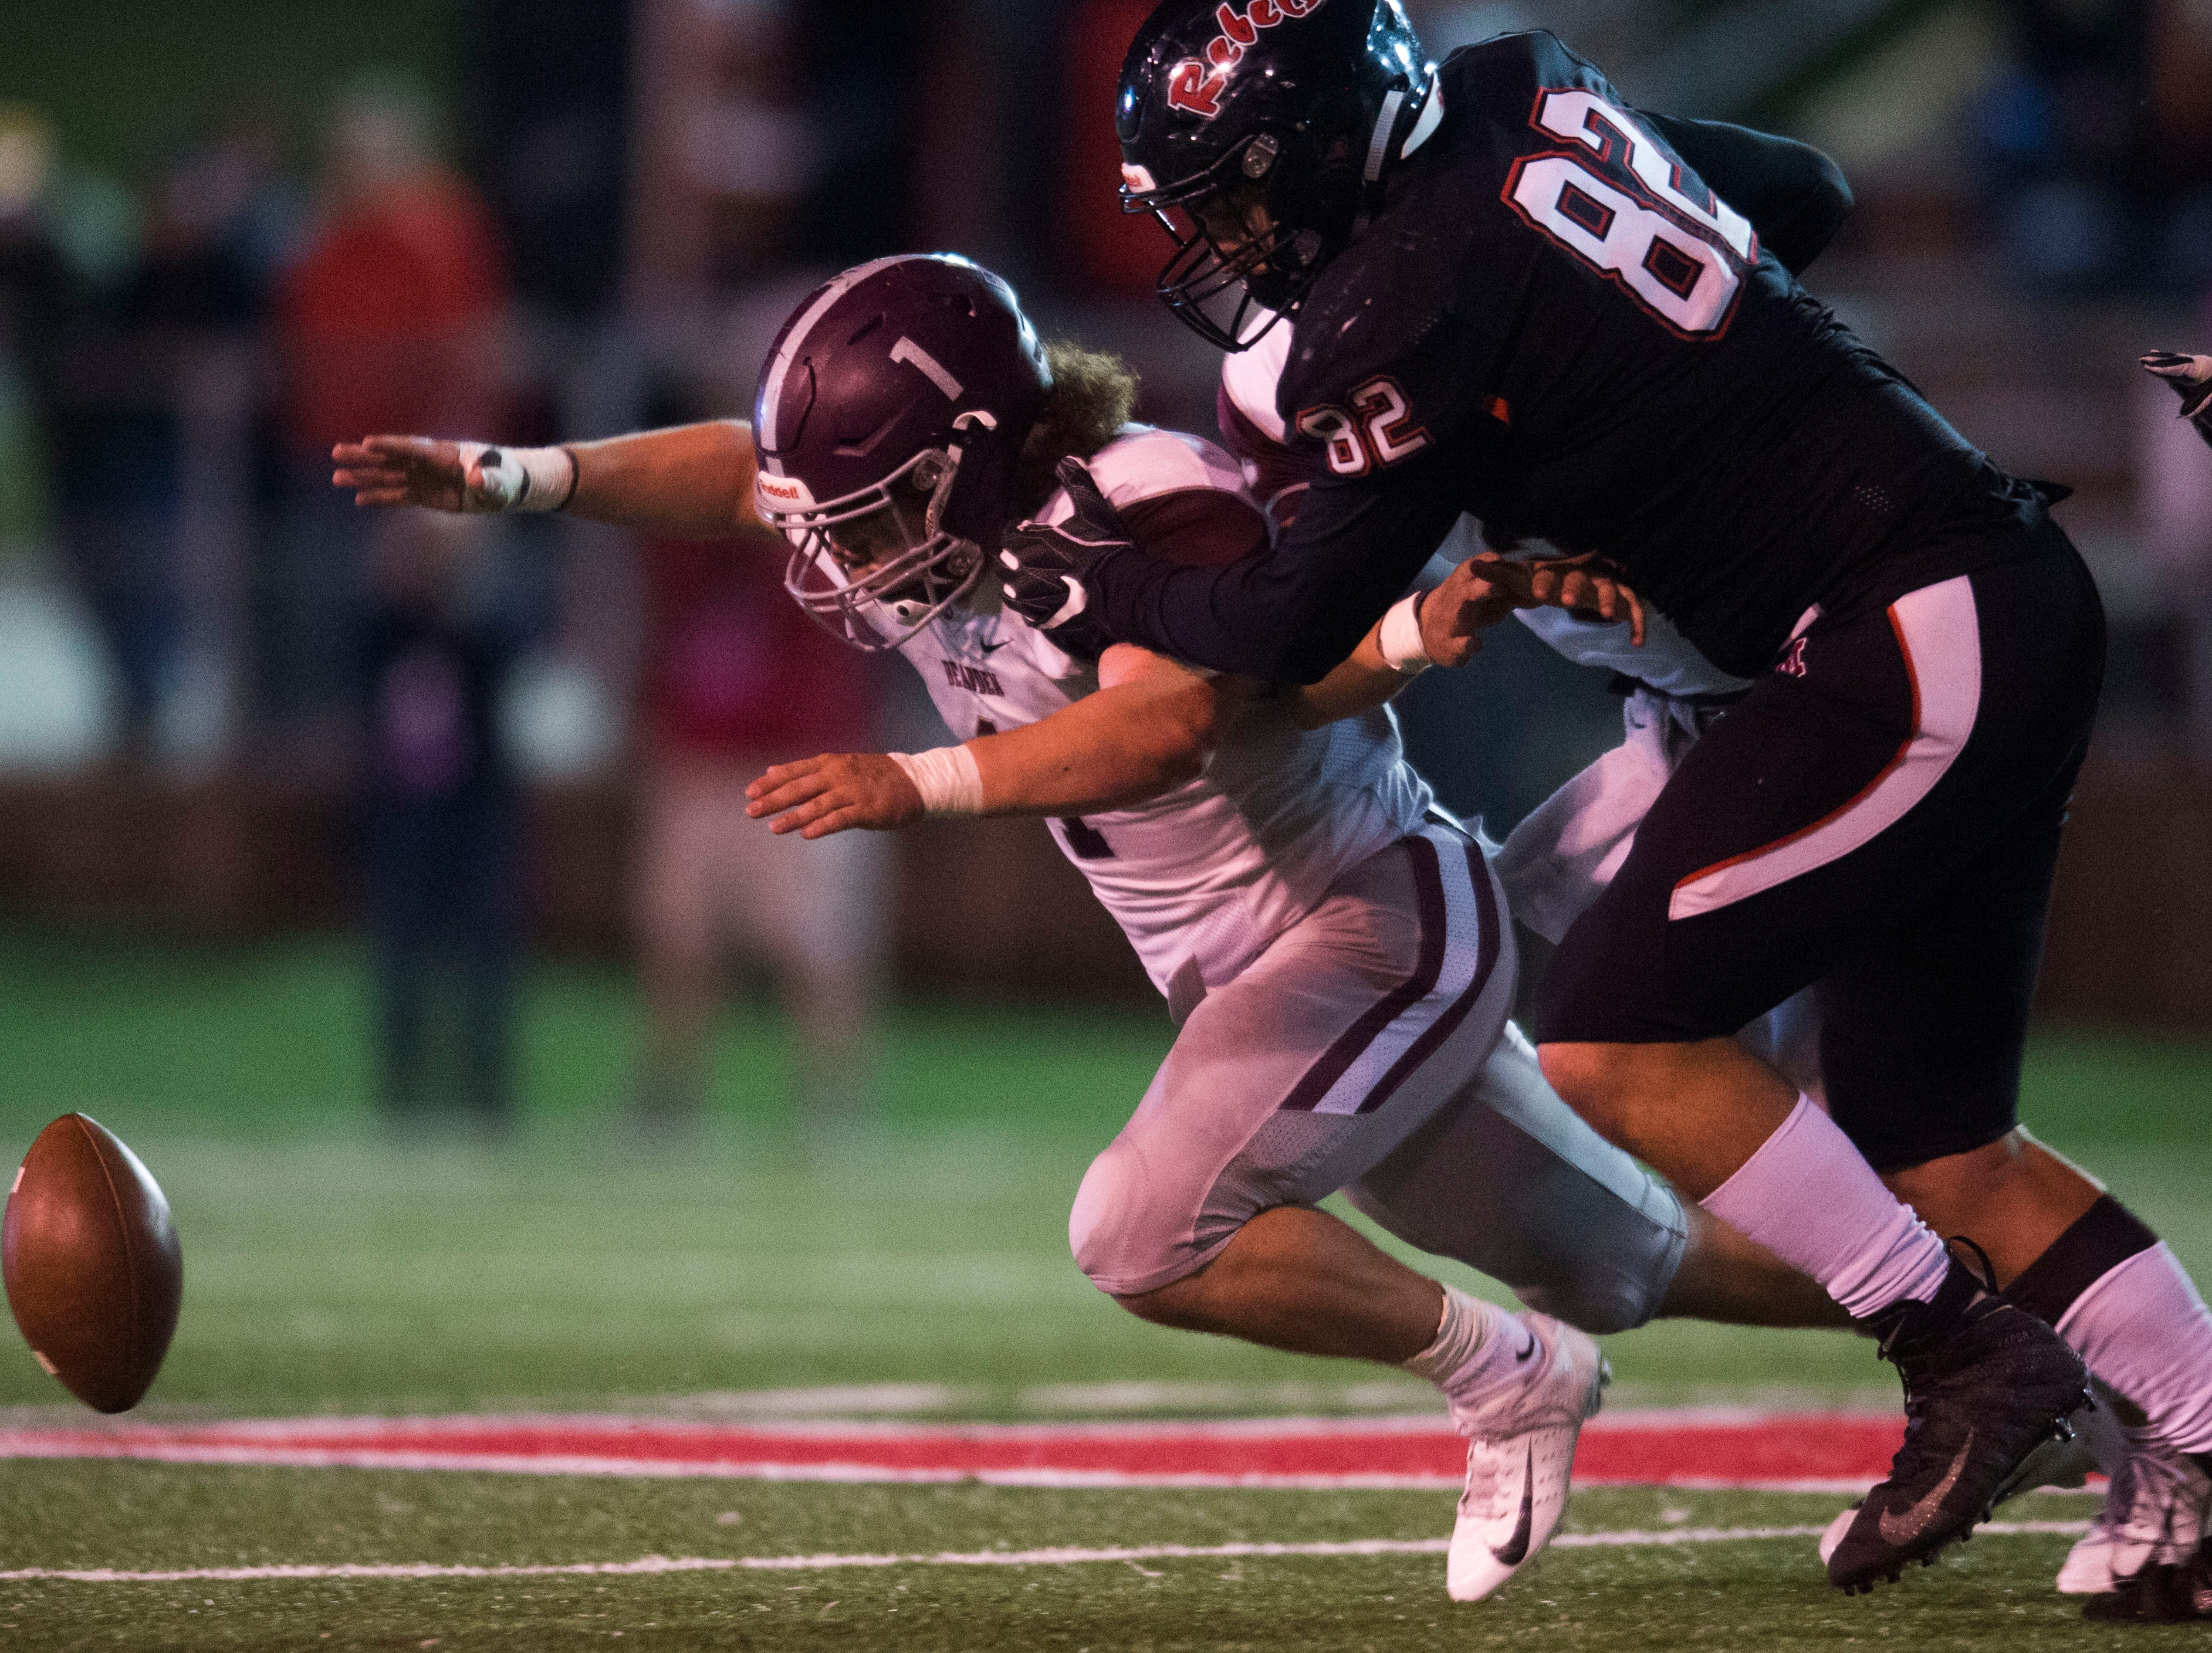 Bearden's Caleb Wilkins (1) attempts to recover a fumbled ball during a first round playoff game between Maryville and Bearden at Maryville, Friday, Nov. 2, 2018. Maryville defeated Bearden 28-7.